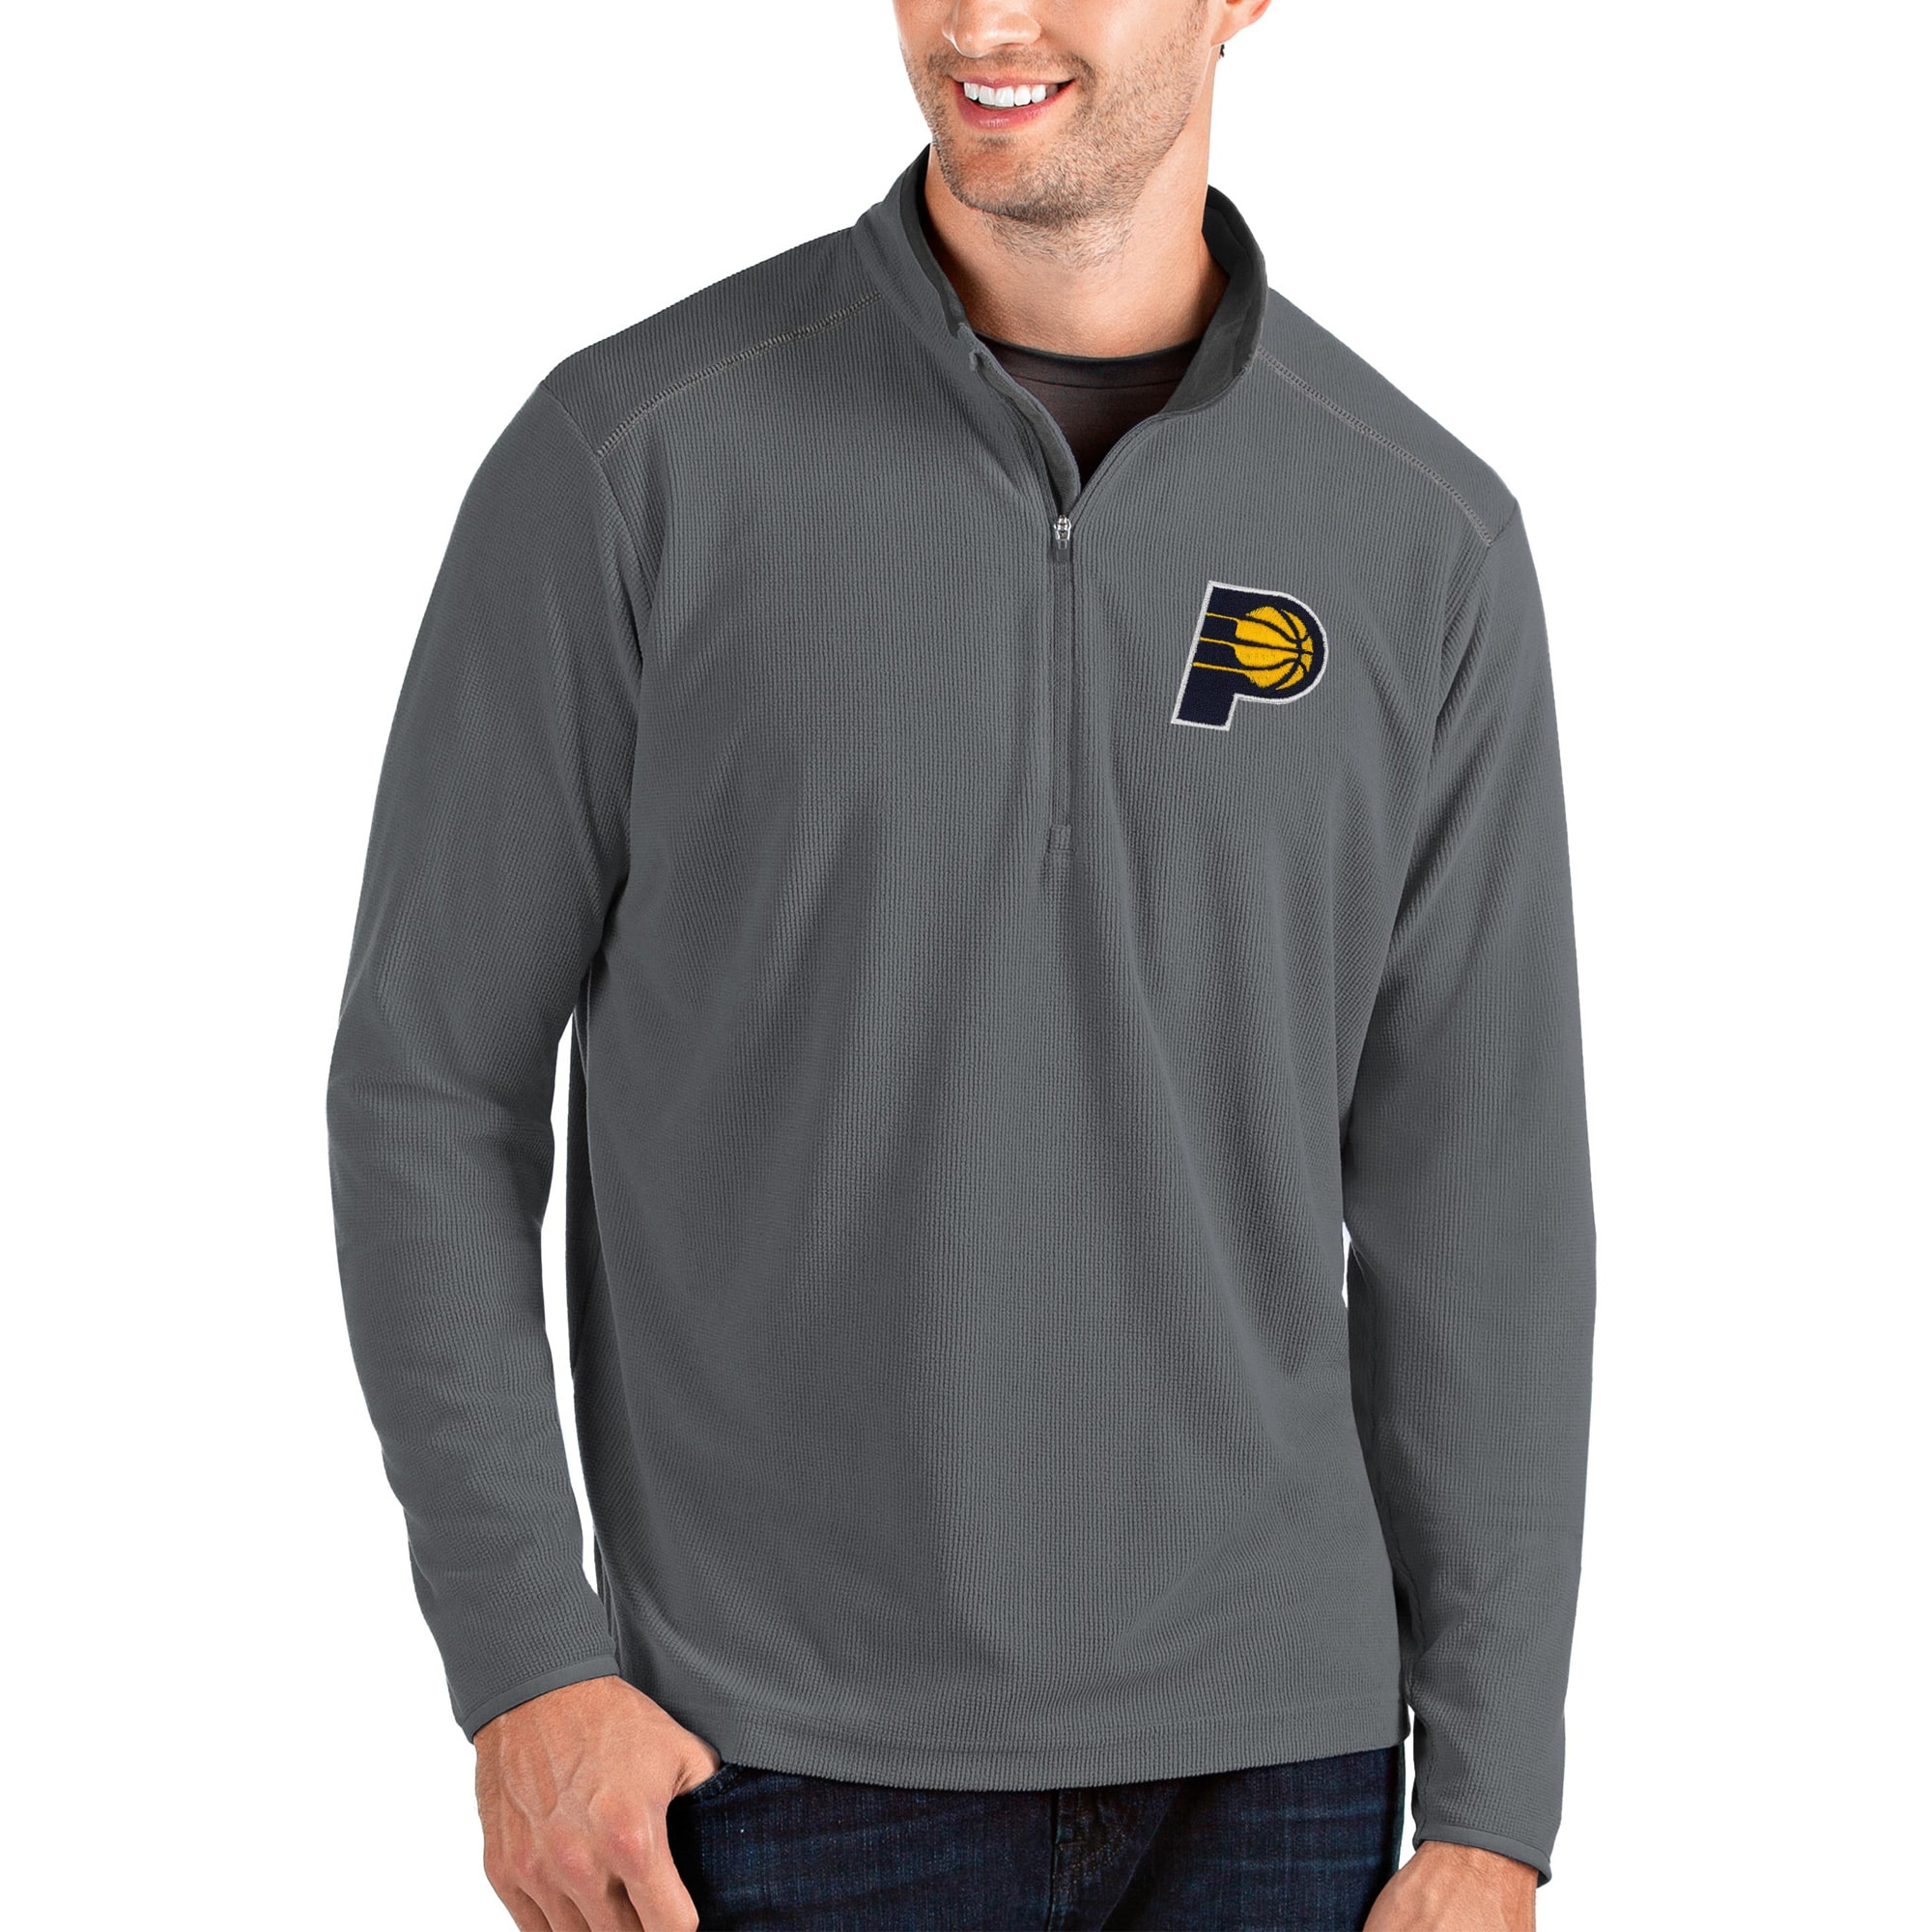 Indiana Pacers Antigua Glacier Quarter-Zip Pullover Jacket - Charcoal/Gray